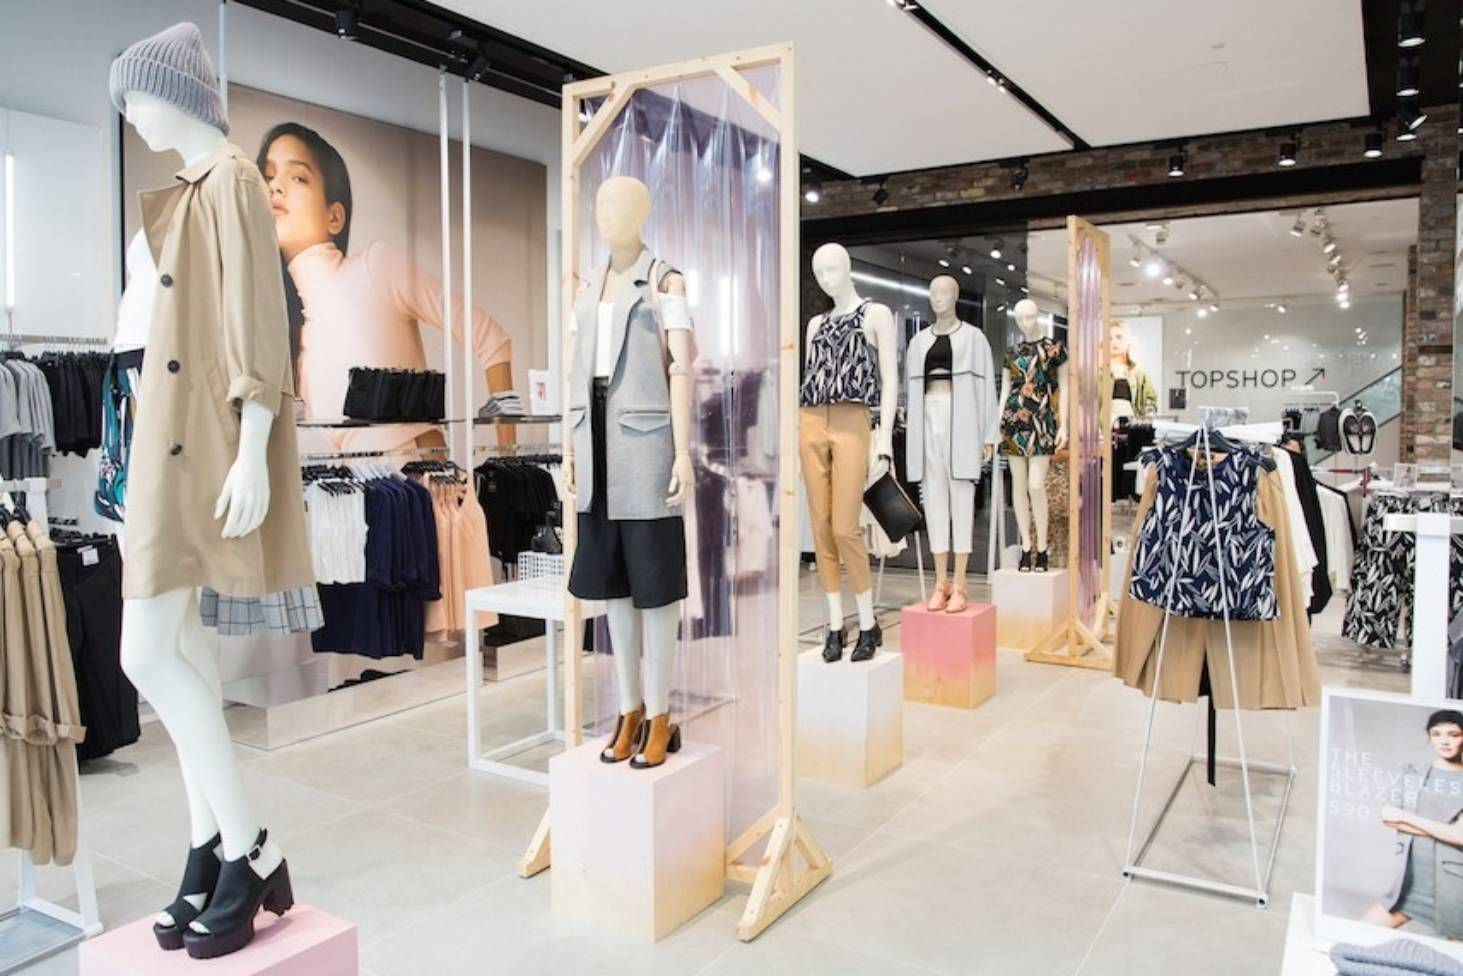 145c3b0e6a80 Why Topshop is failing in New Zealand | Stuff.co.nz